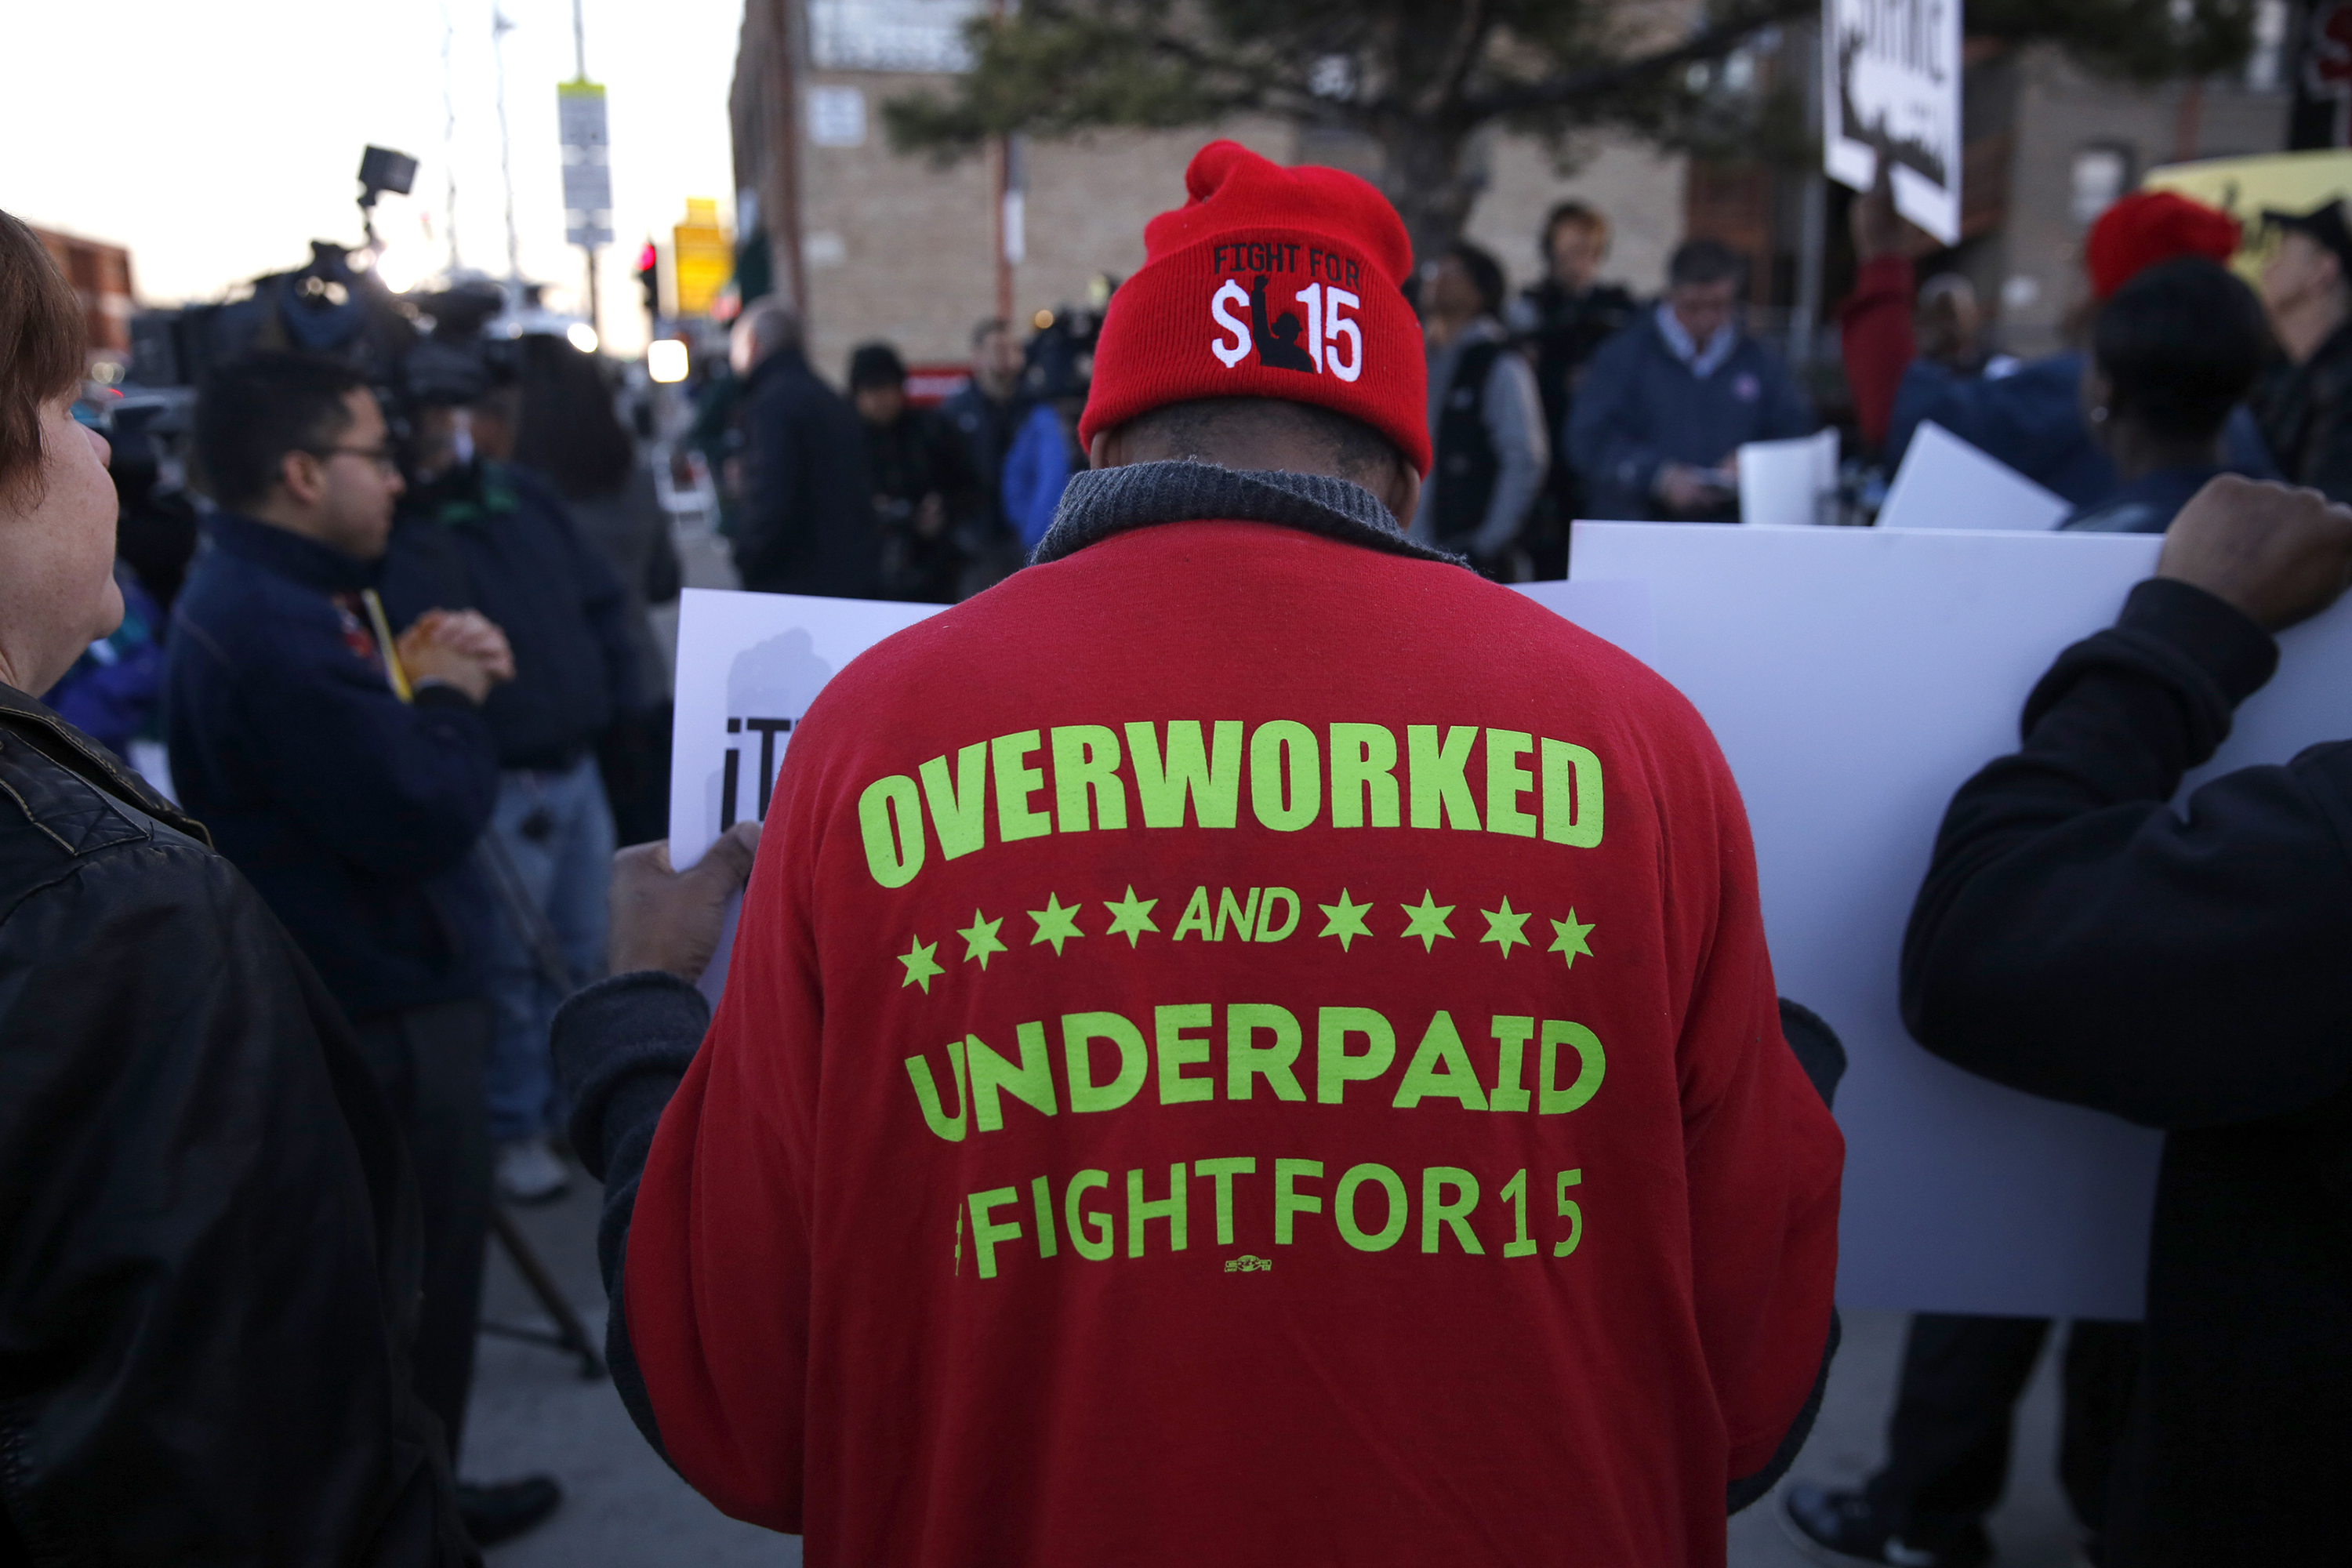 Labor groups protest Wednesday for $15 wage